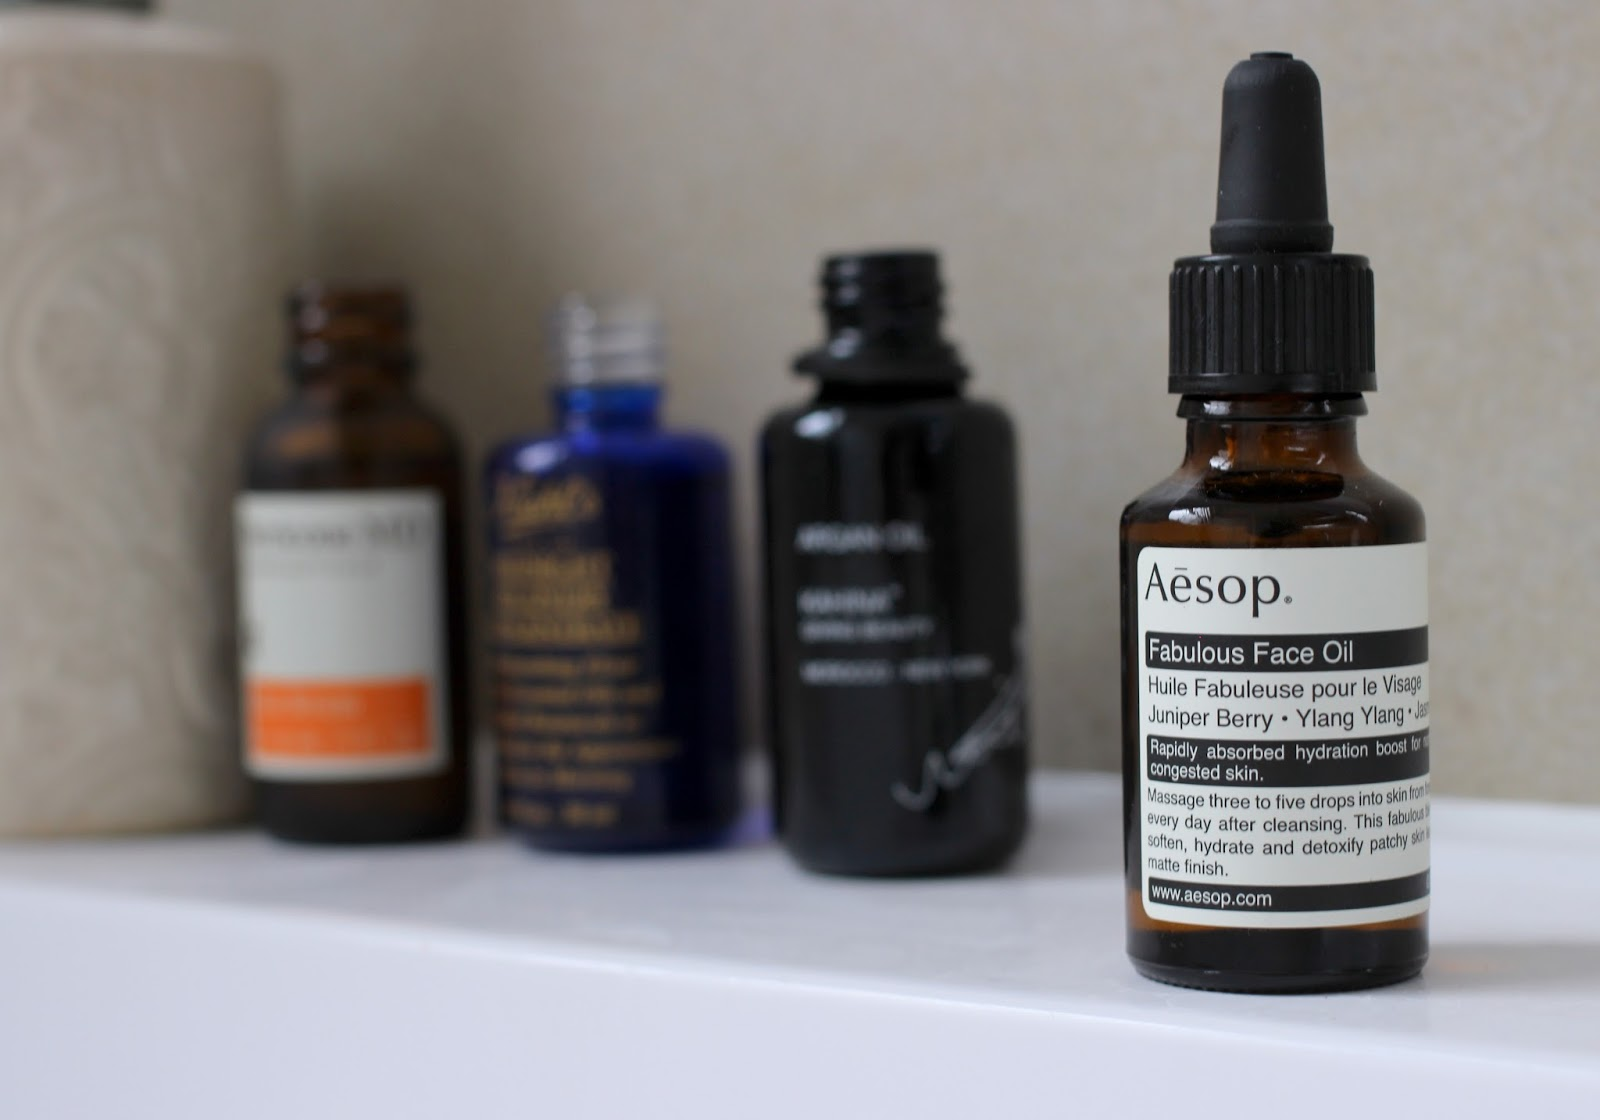 Aesop Fabulous Face Oil Review